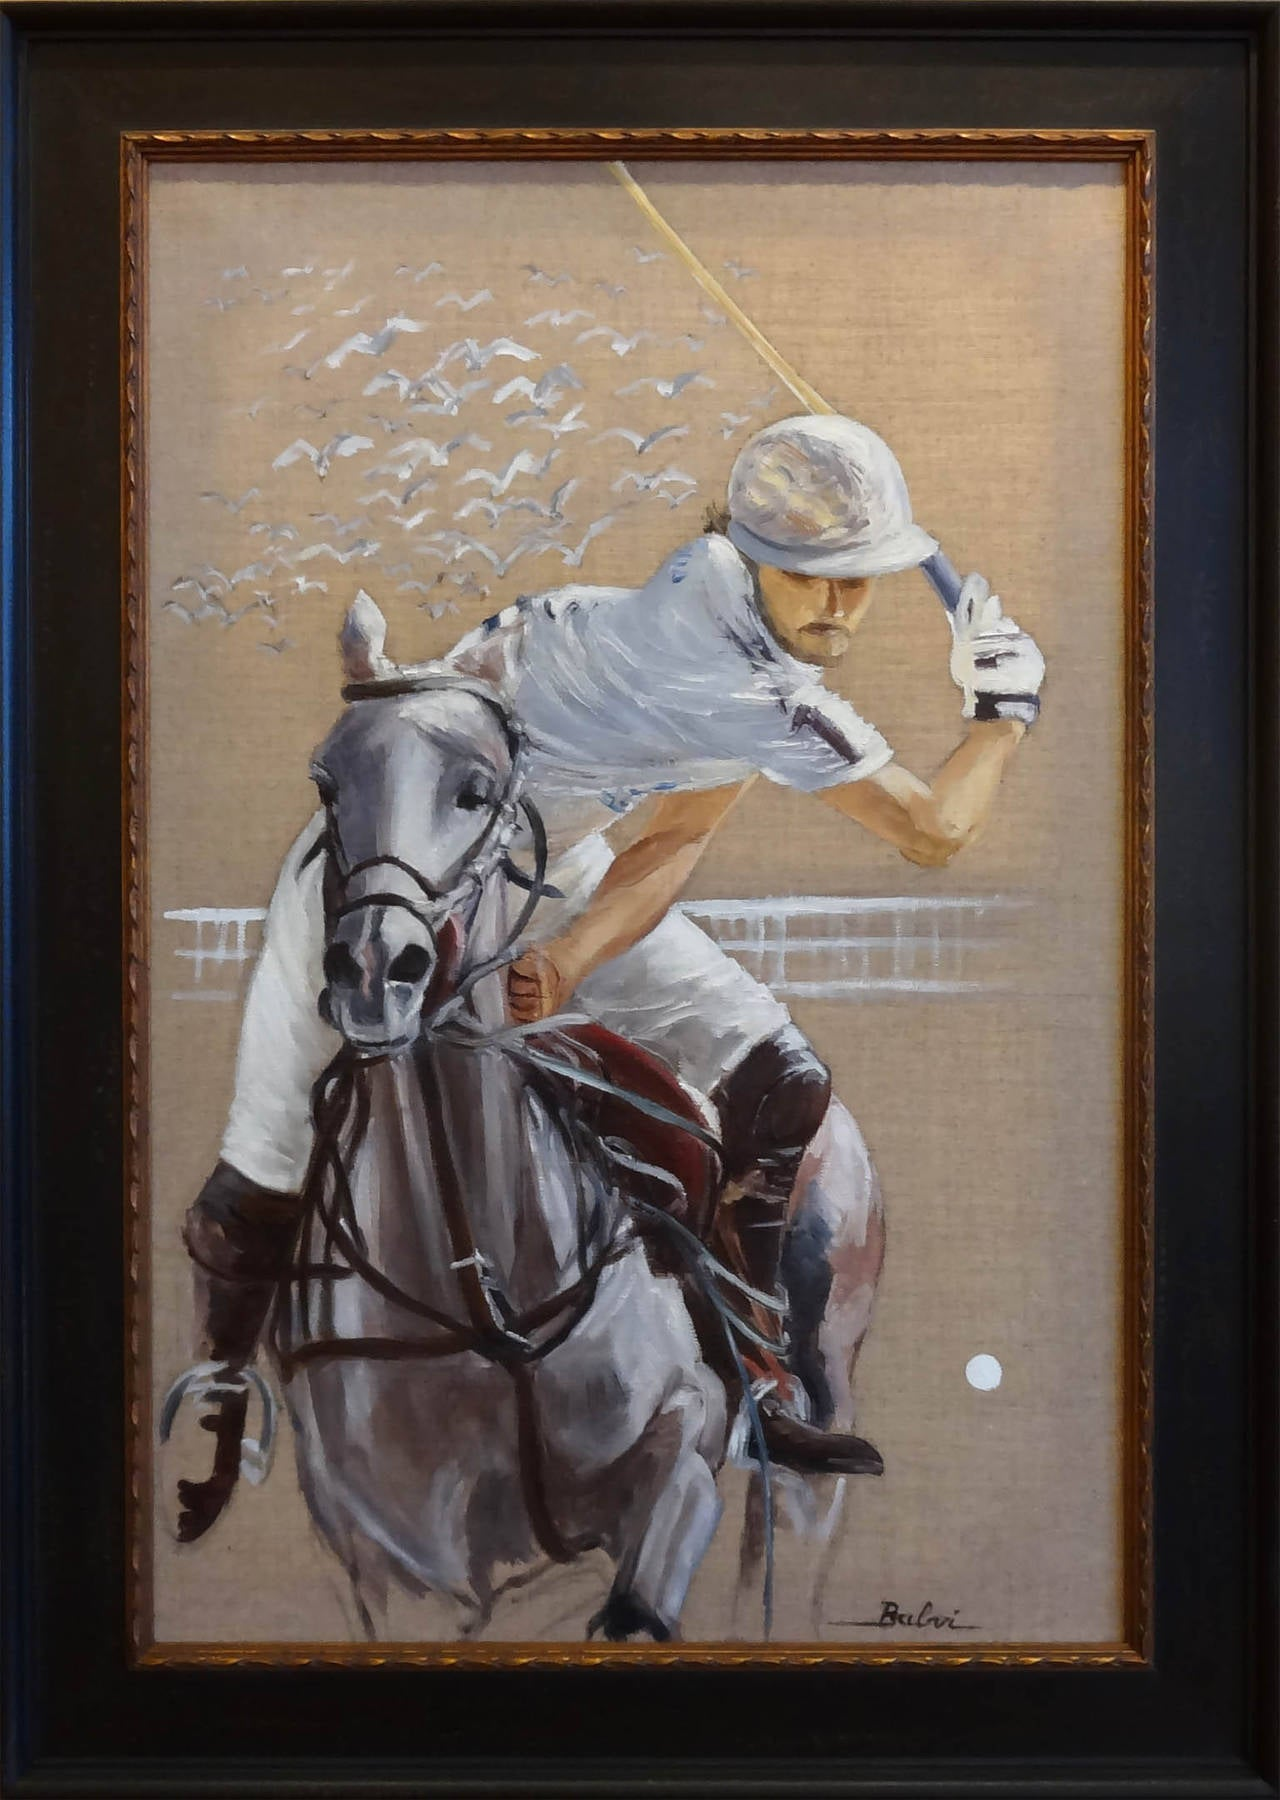 Le Polo Blanc - Impressionist Painting by Simone Balvi